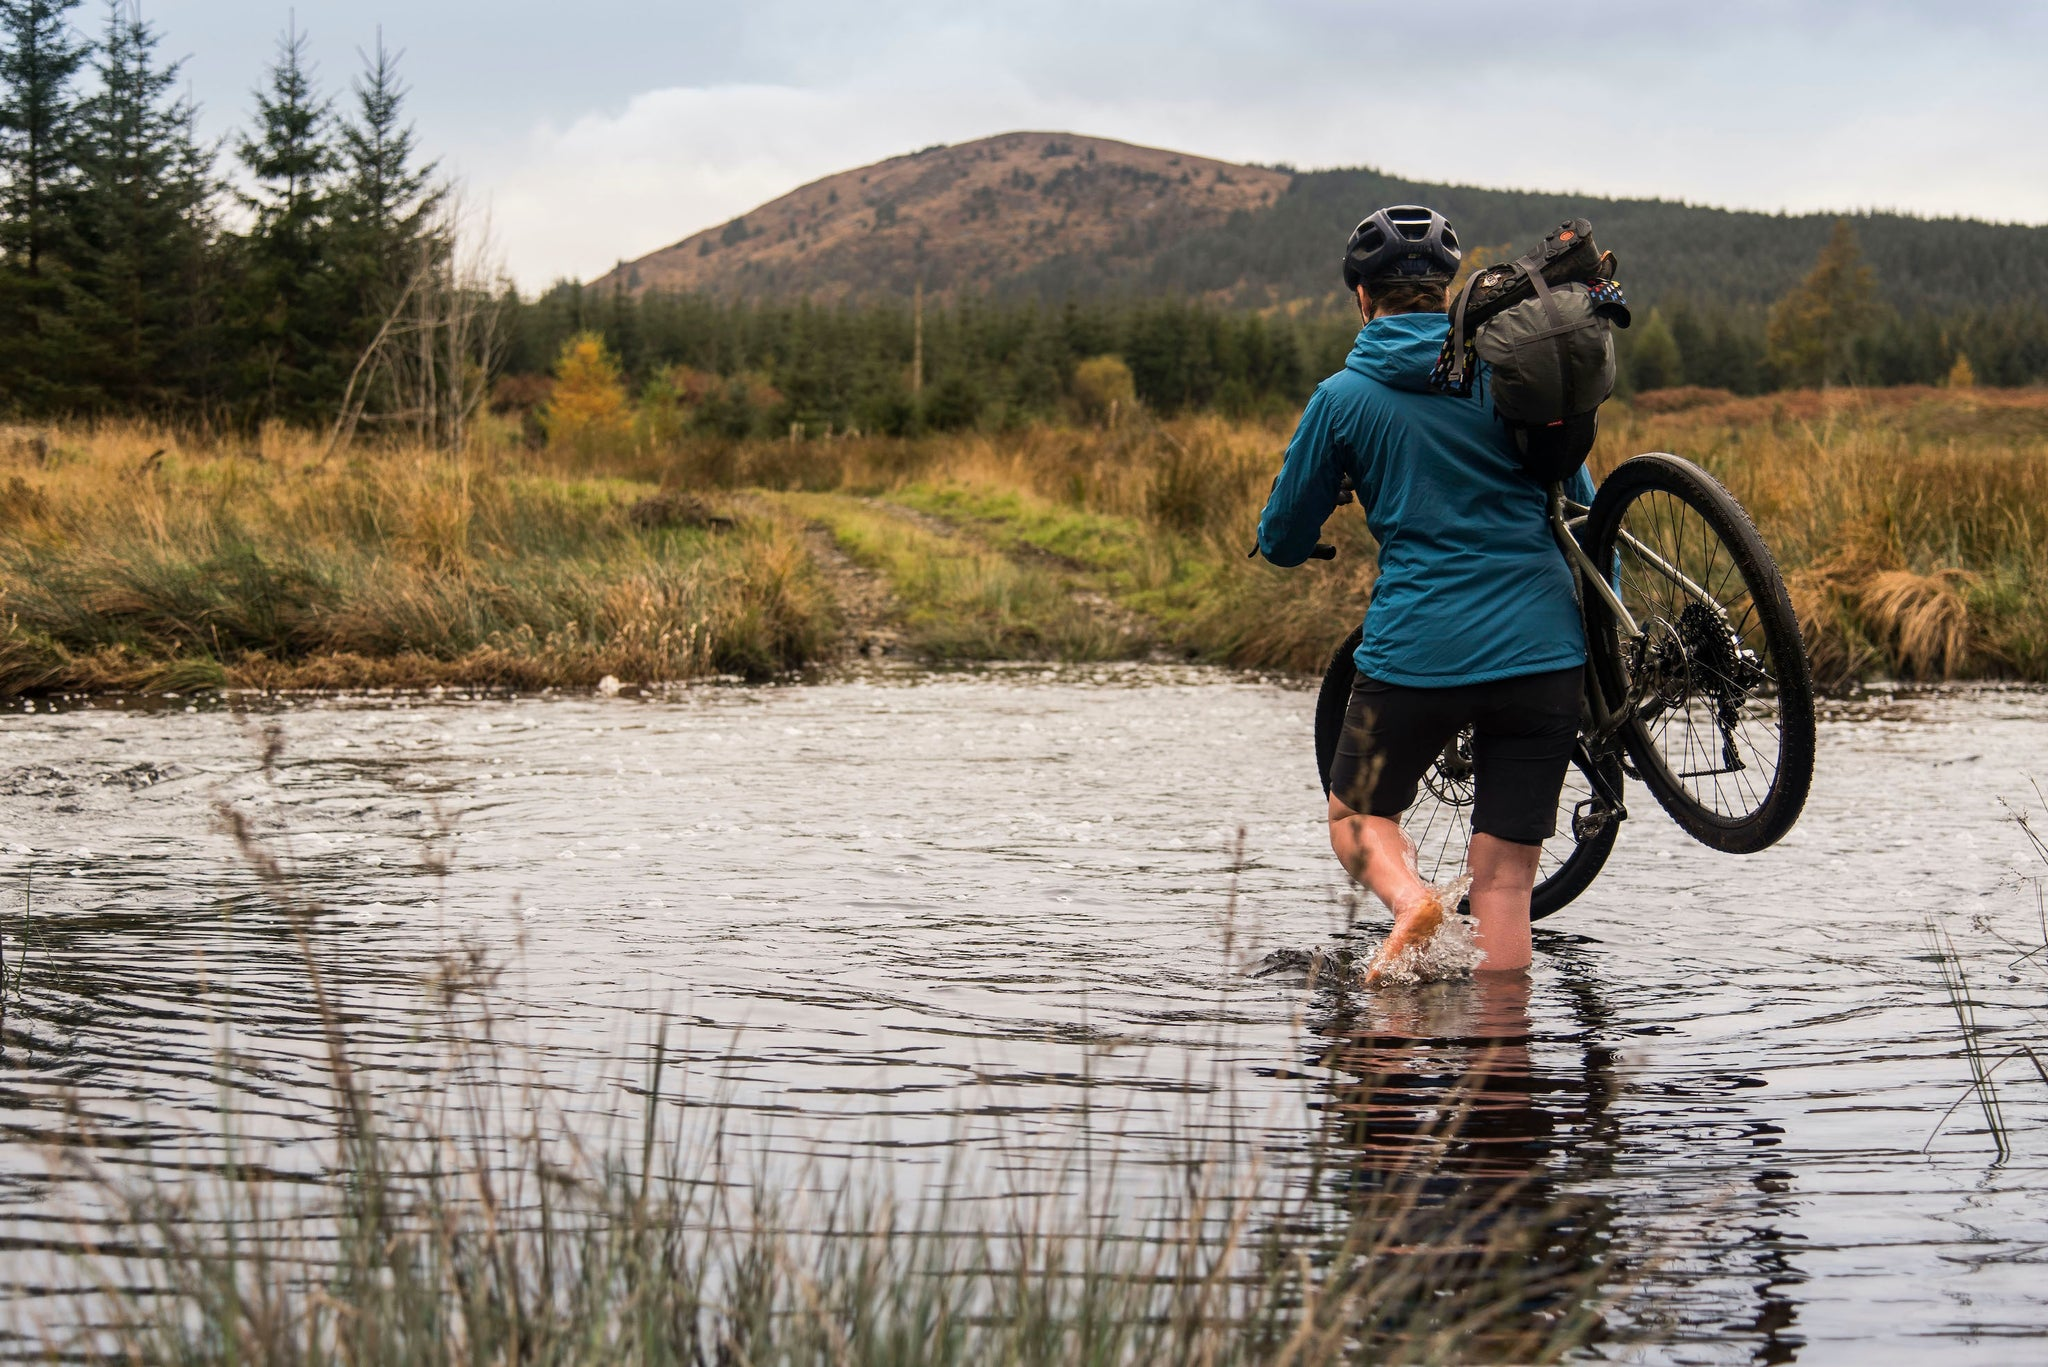 Fording a river while bikepacking in Galloway Forest